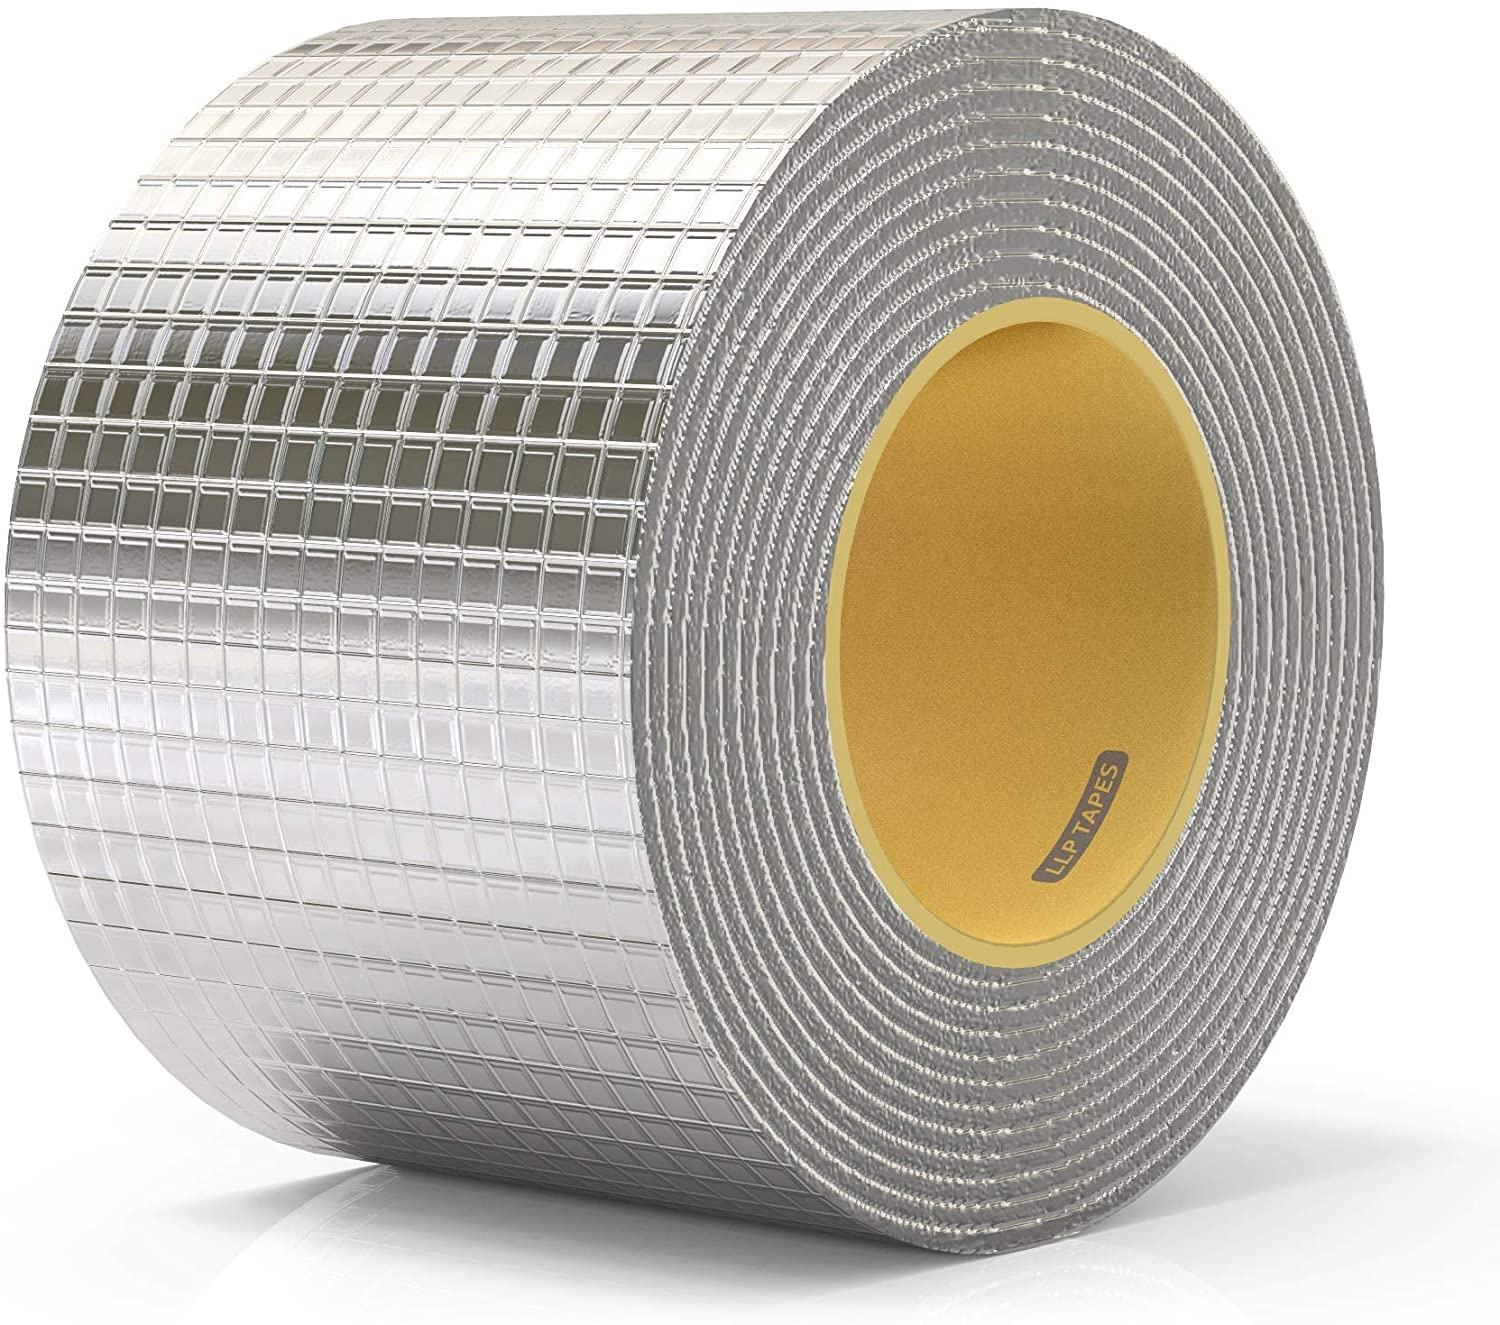 Aluminium Butyl Tape 2 Inch <span class=keywords><strong>X</strong></span> 16.5 Voeten Hatch Cover Flashing Permanente Waterdichte Lek Reparatie Tape Voor Boot Pijp Rv luifel Dak